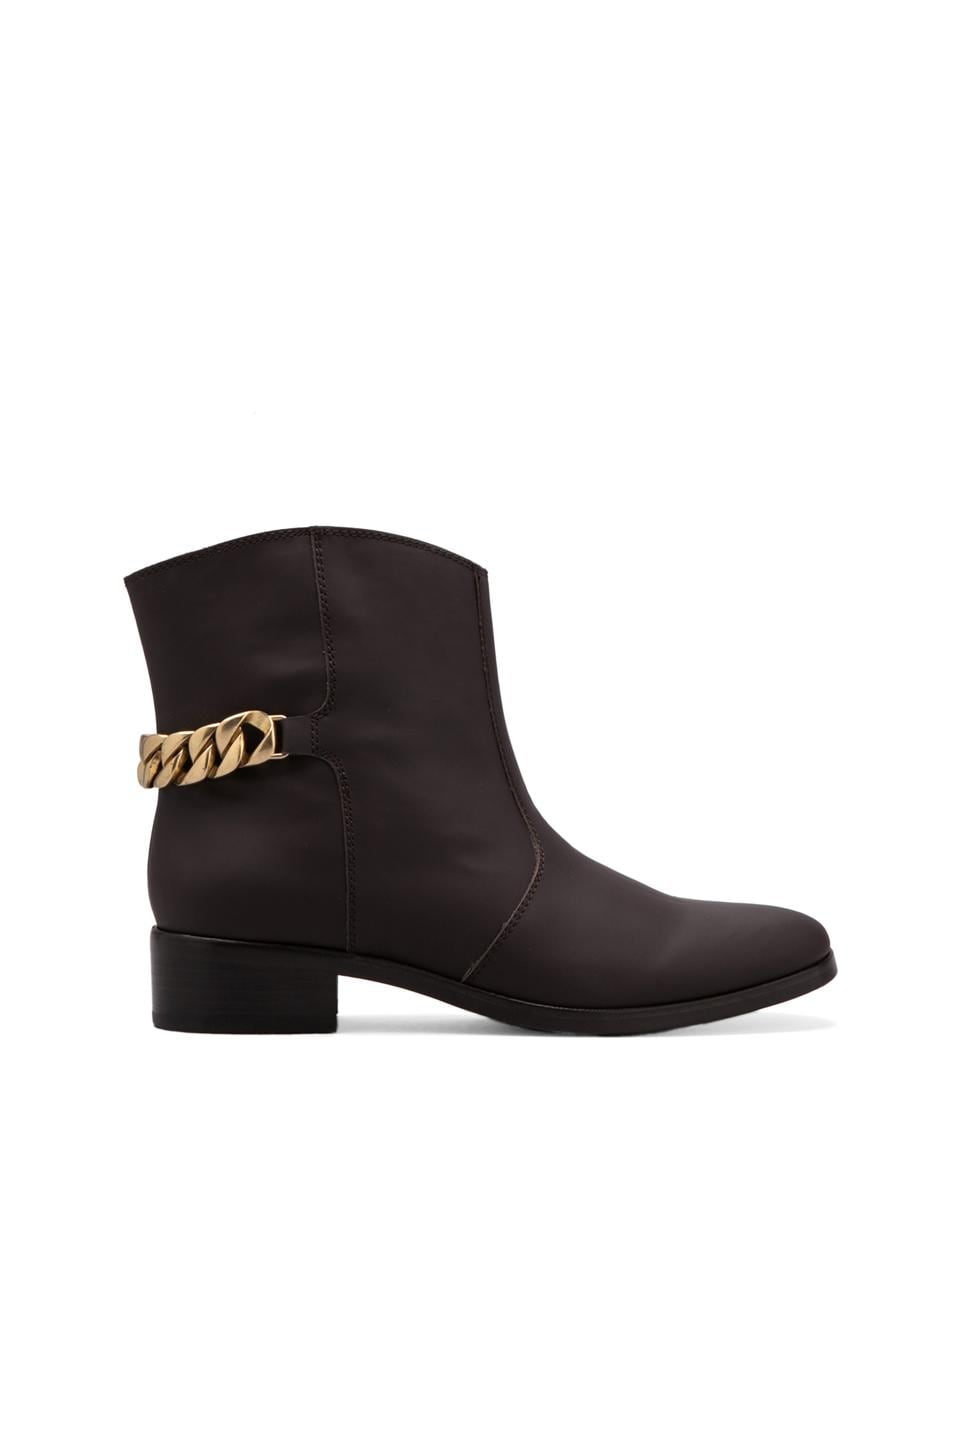 See By Chloe Chain 30mm Bootie in Moka